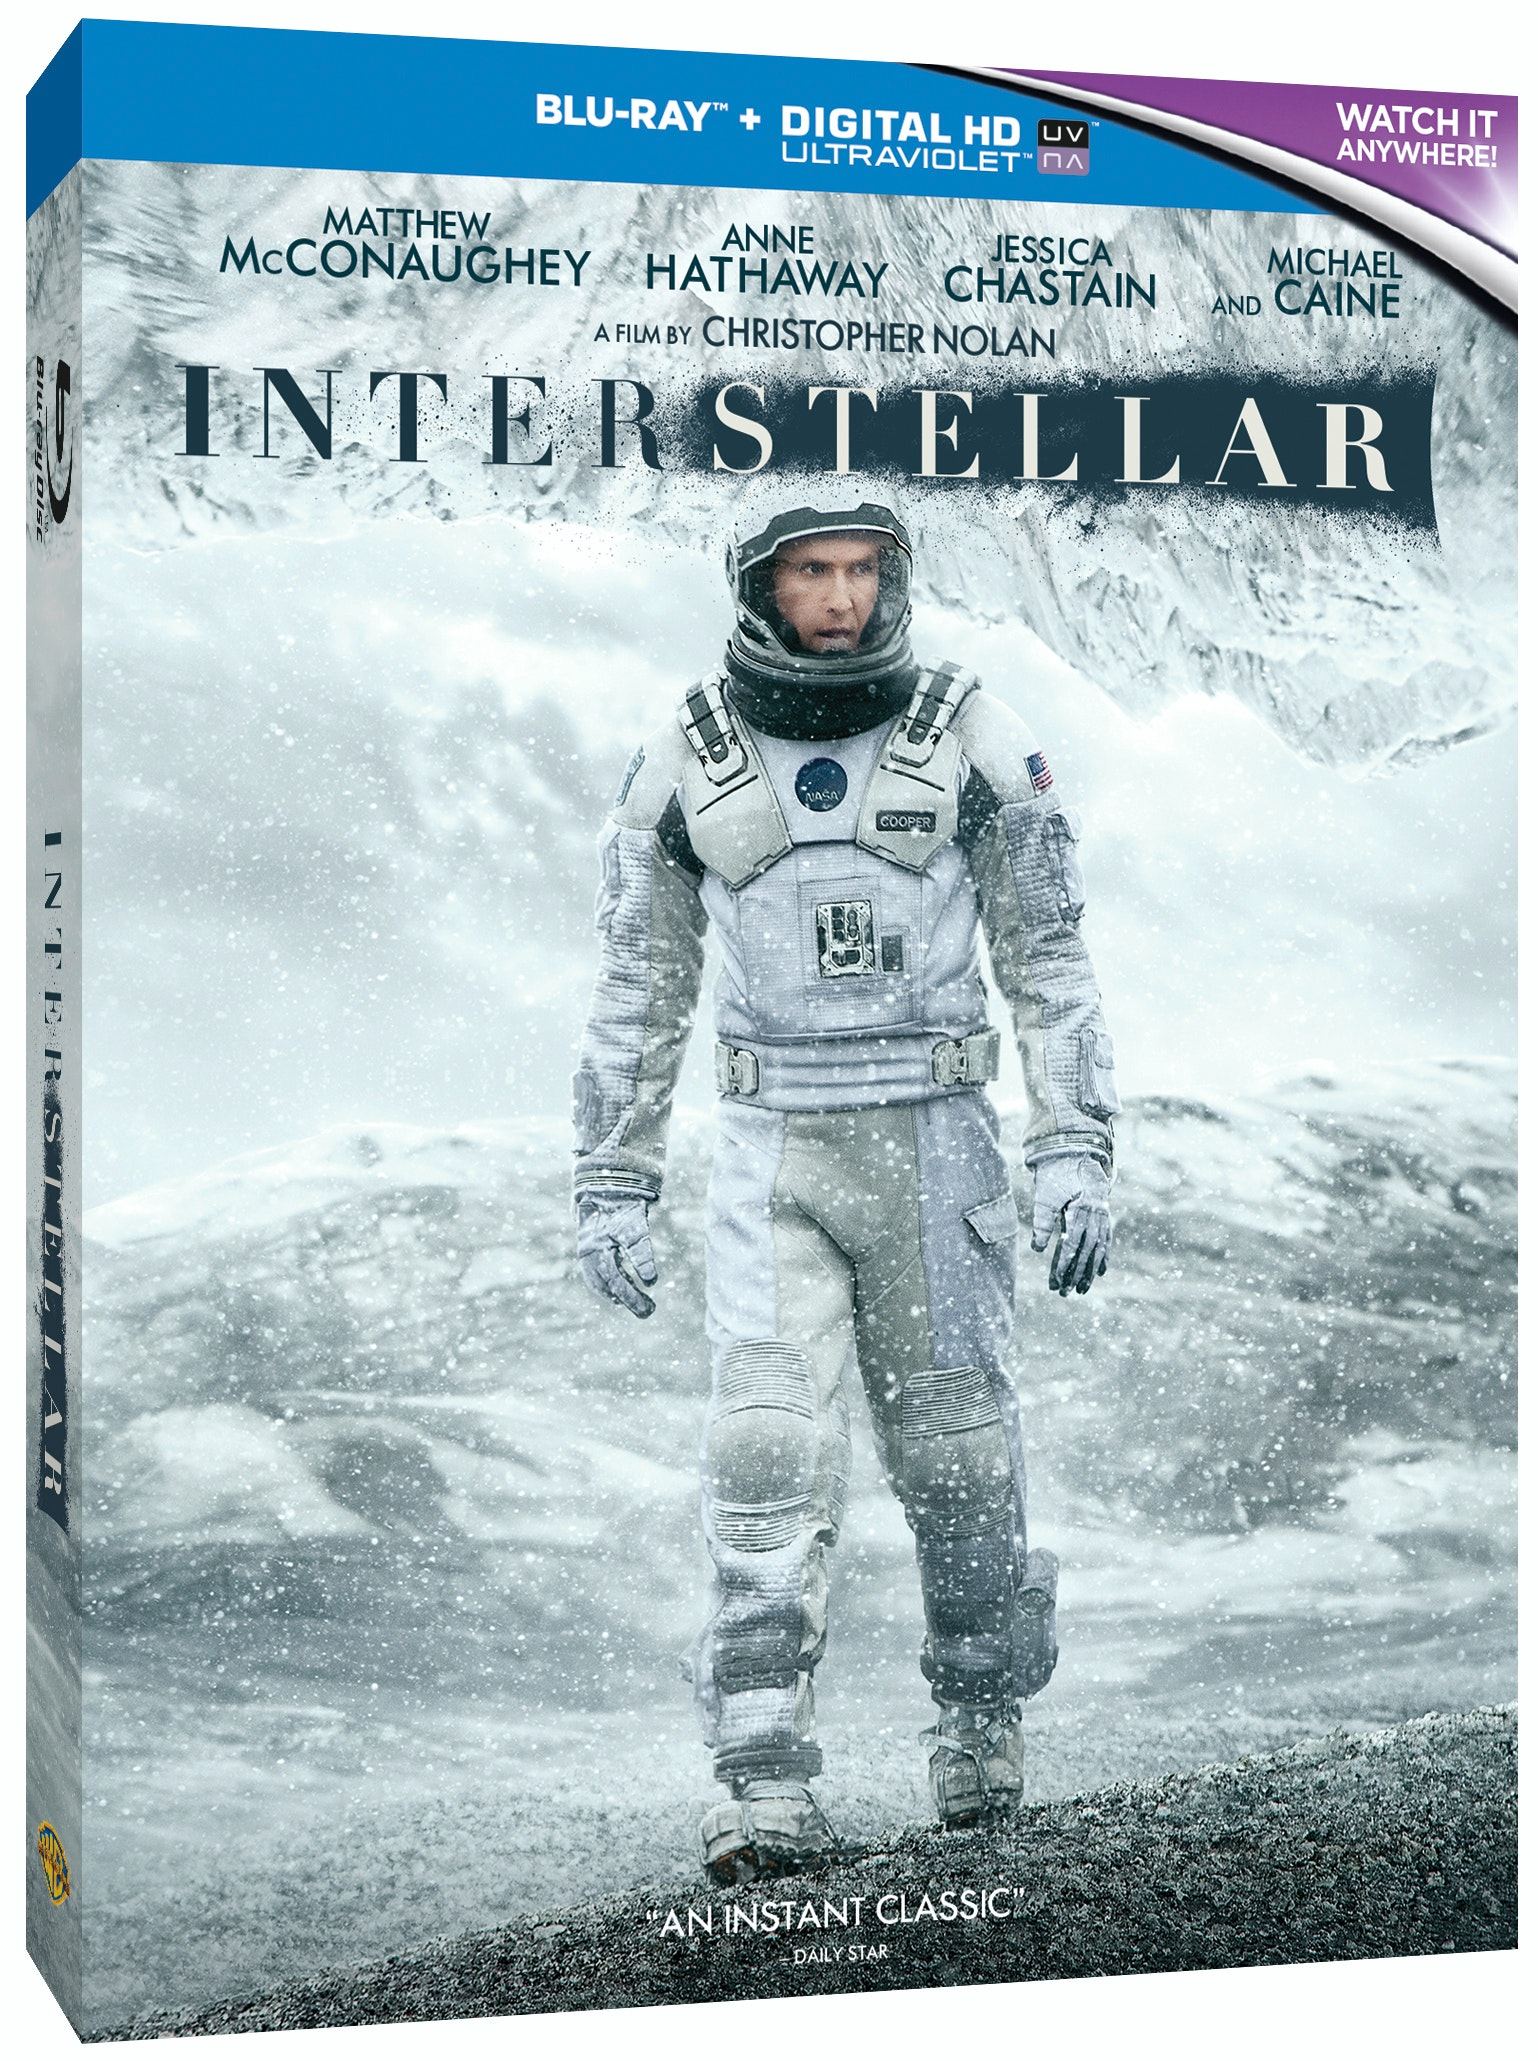 IPAD MINI WITH INTERSTELLAR sweepstakes